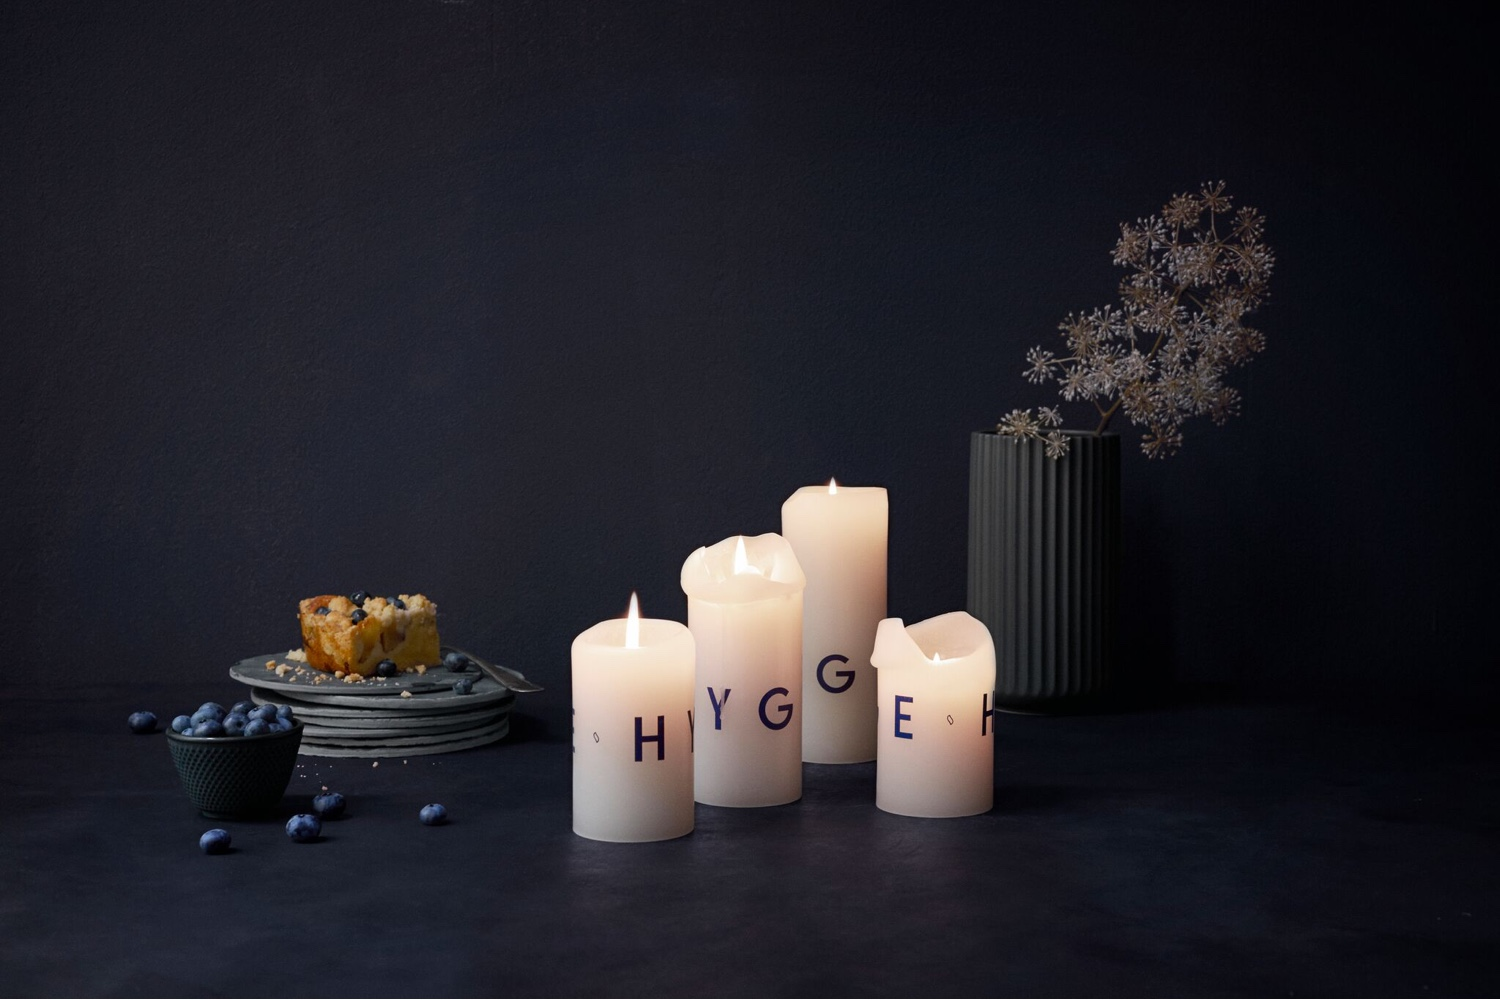 Deep Glow Hygge candles